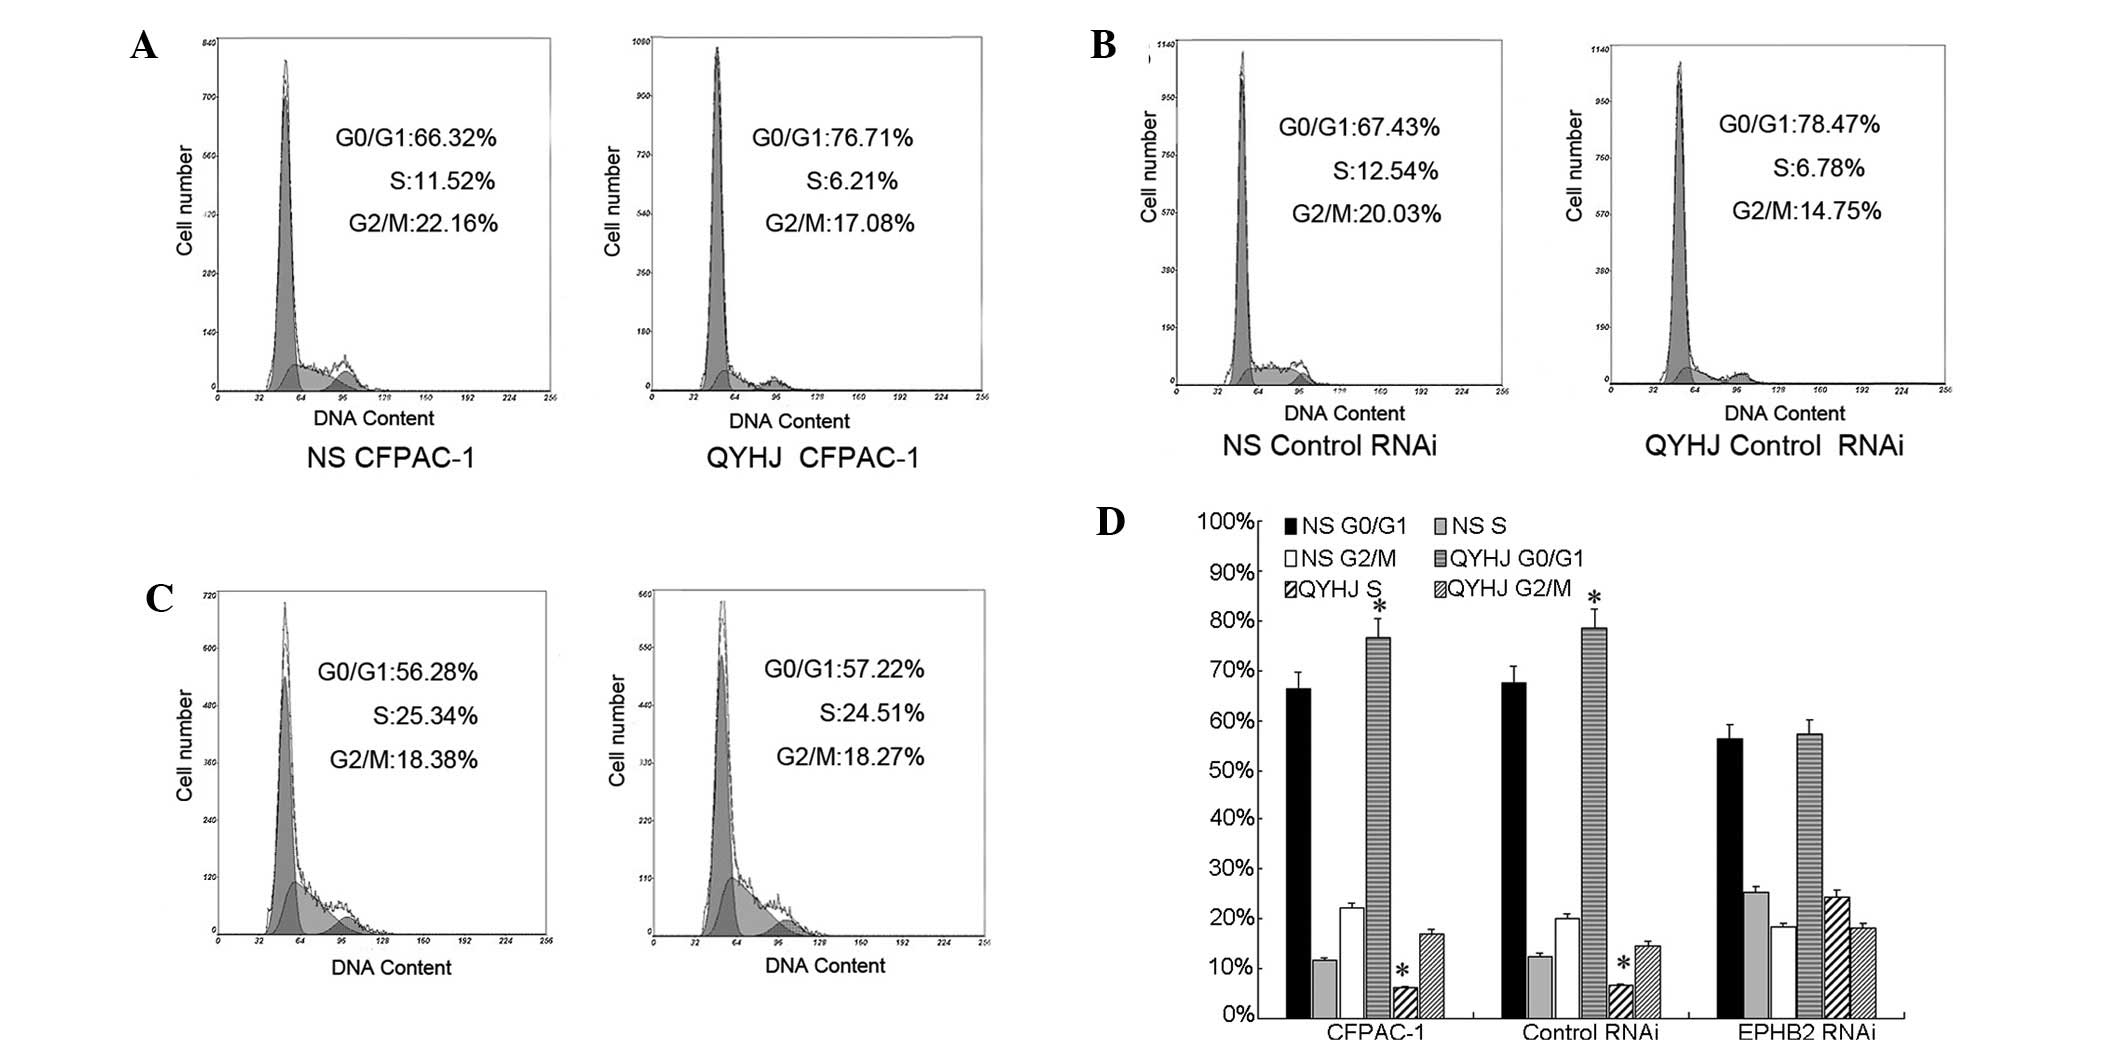 High Expression Of Erythropoietinproducing Hepatoma Cell Line B2 Micro Motion Wiring Diagram Figure 2 Qyhj Suppresses Tumor Growth Through Inhibiting The Cycle Process Ac Was Analyzed In Cfpac 1cfpac 1 Control Rnai And